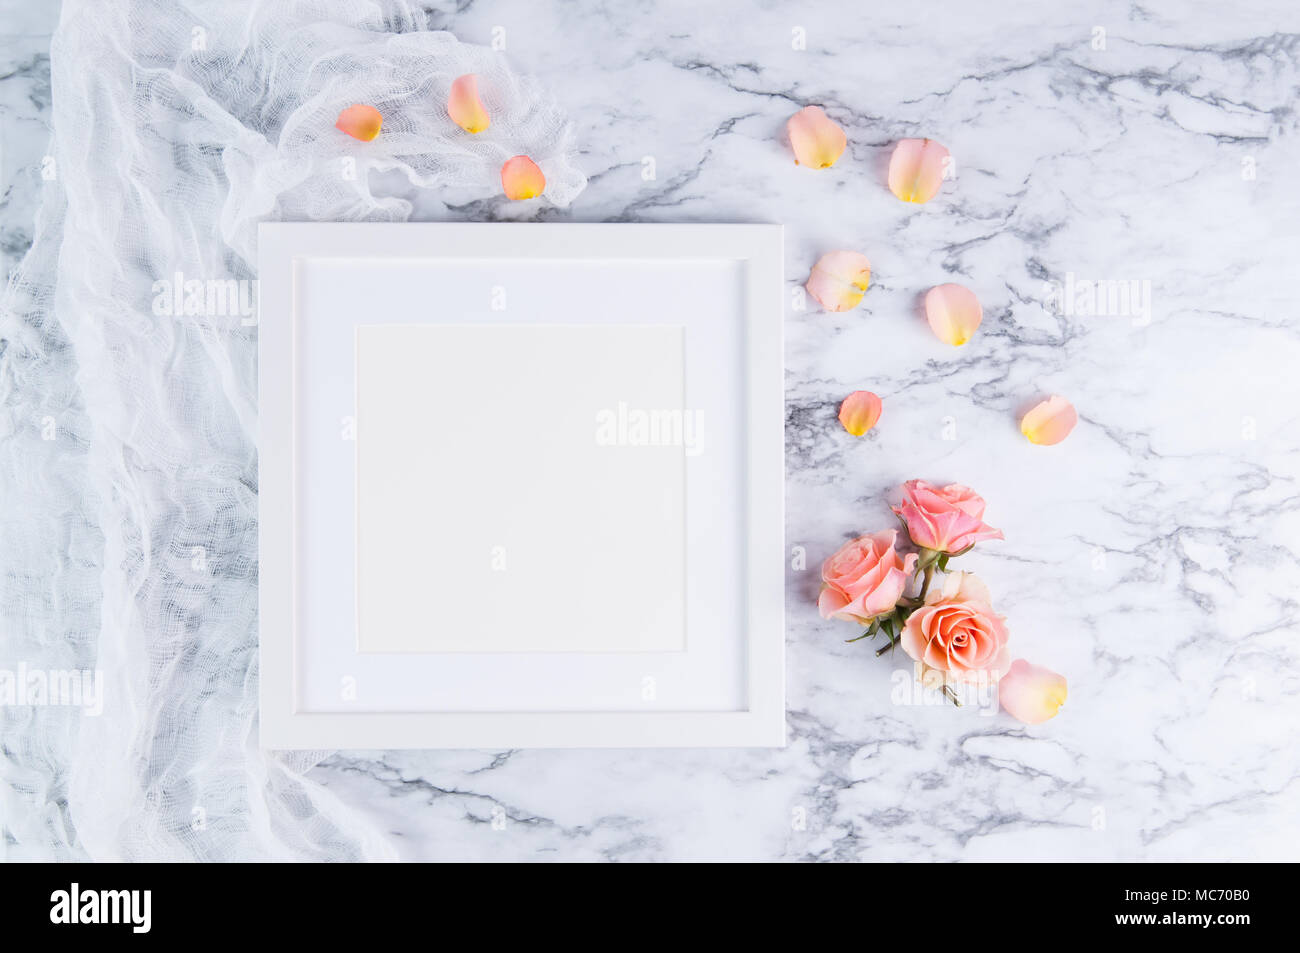 white square frame mockup on a marble background with peach colored ...